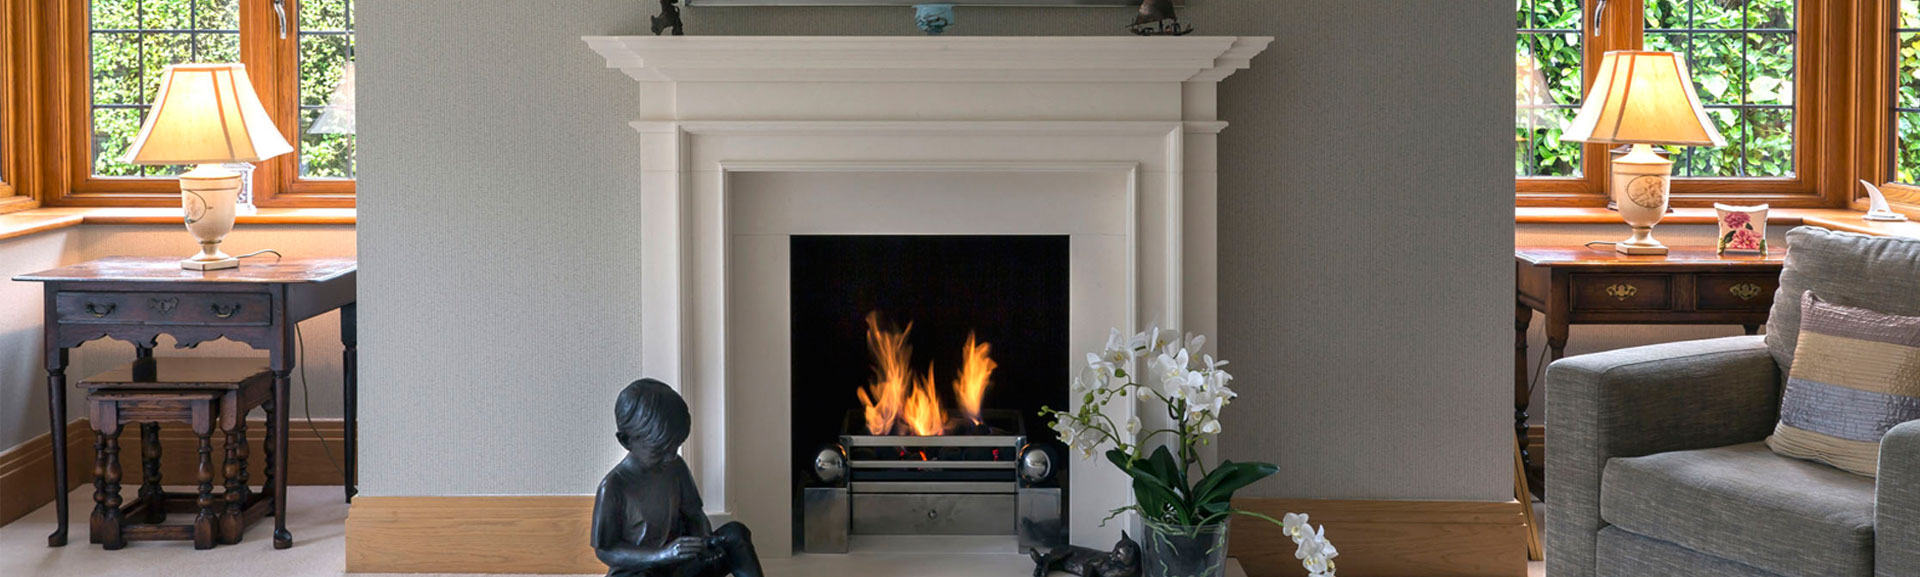 Marble granite fireplaces mentals for sale marble for European homes fireplaces